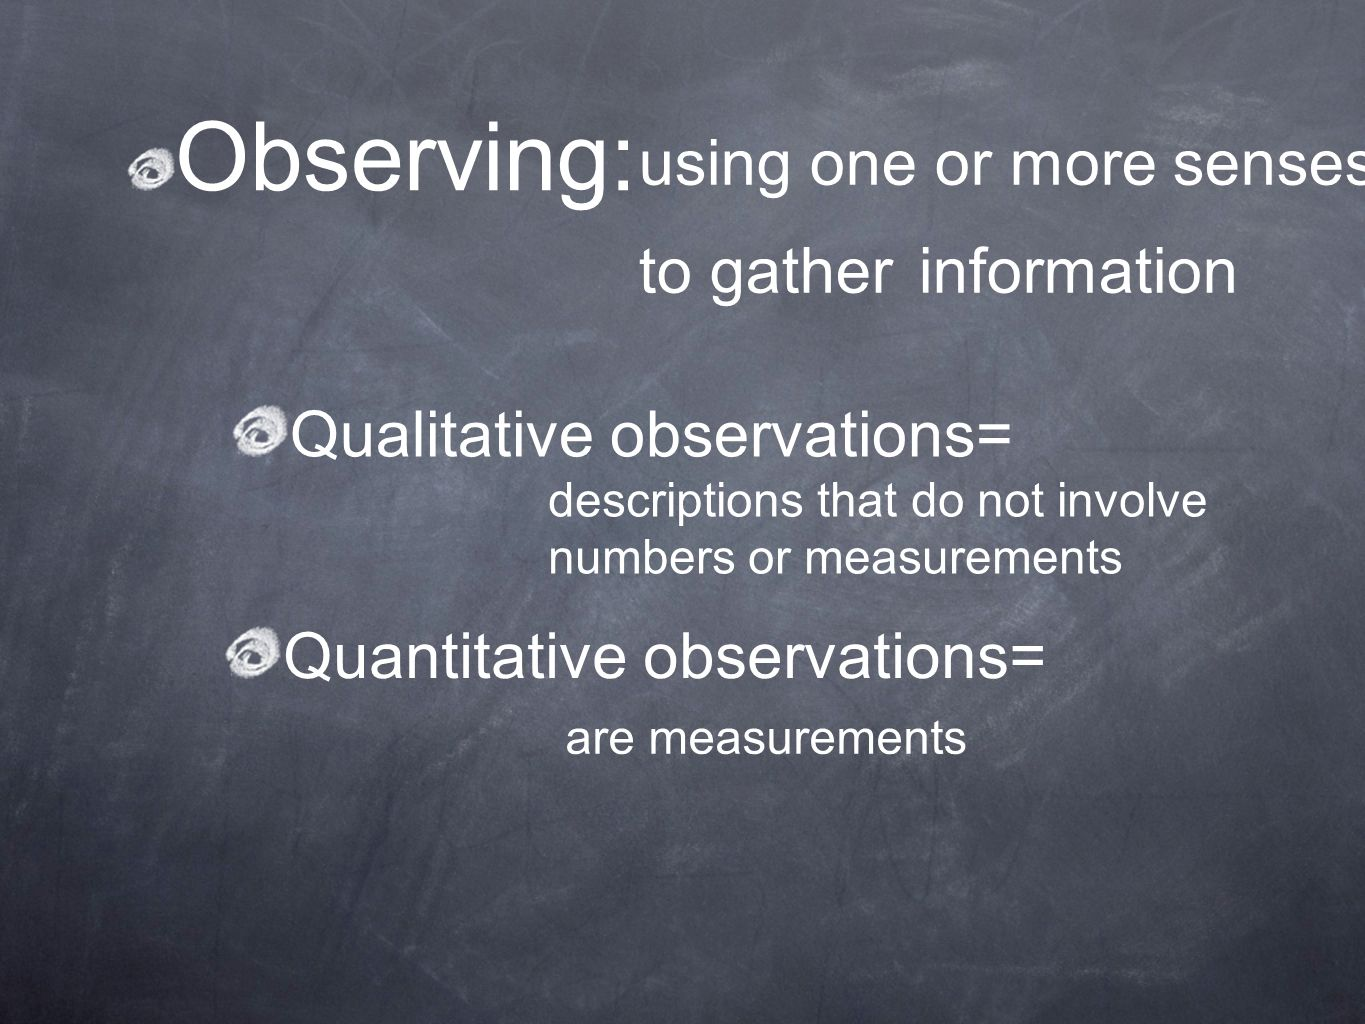 Observing: using one or more senses to gather information